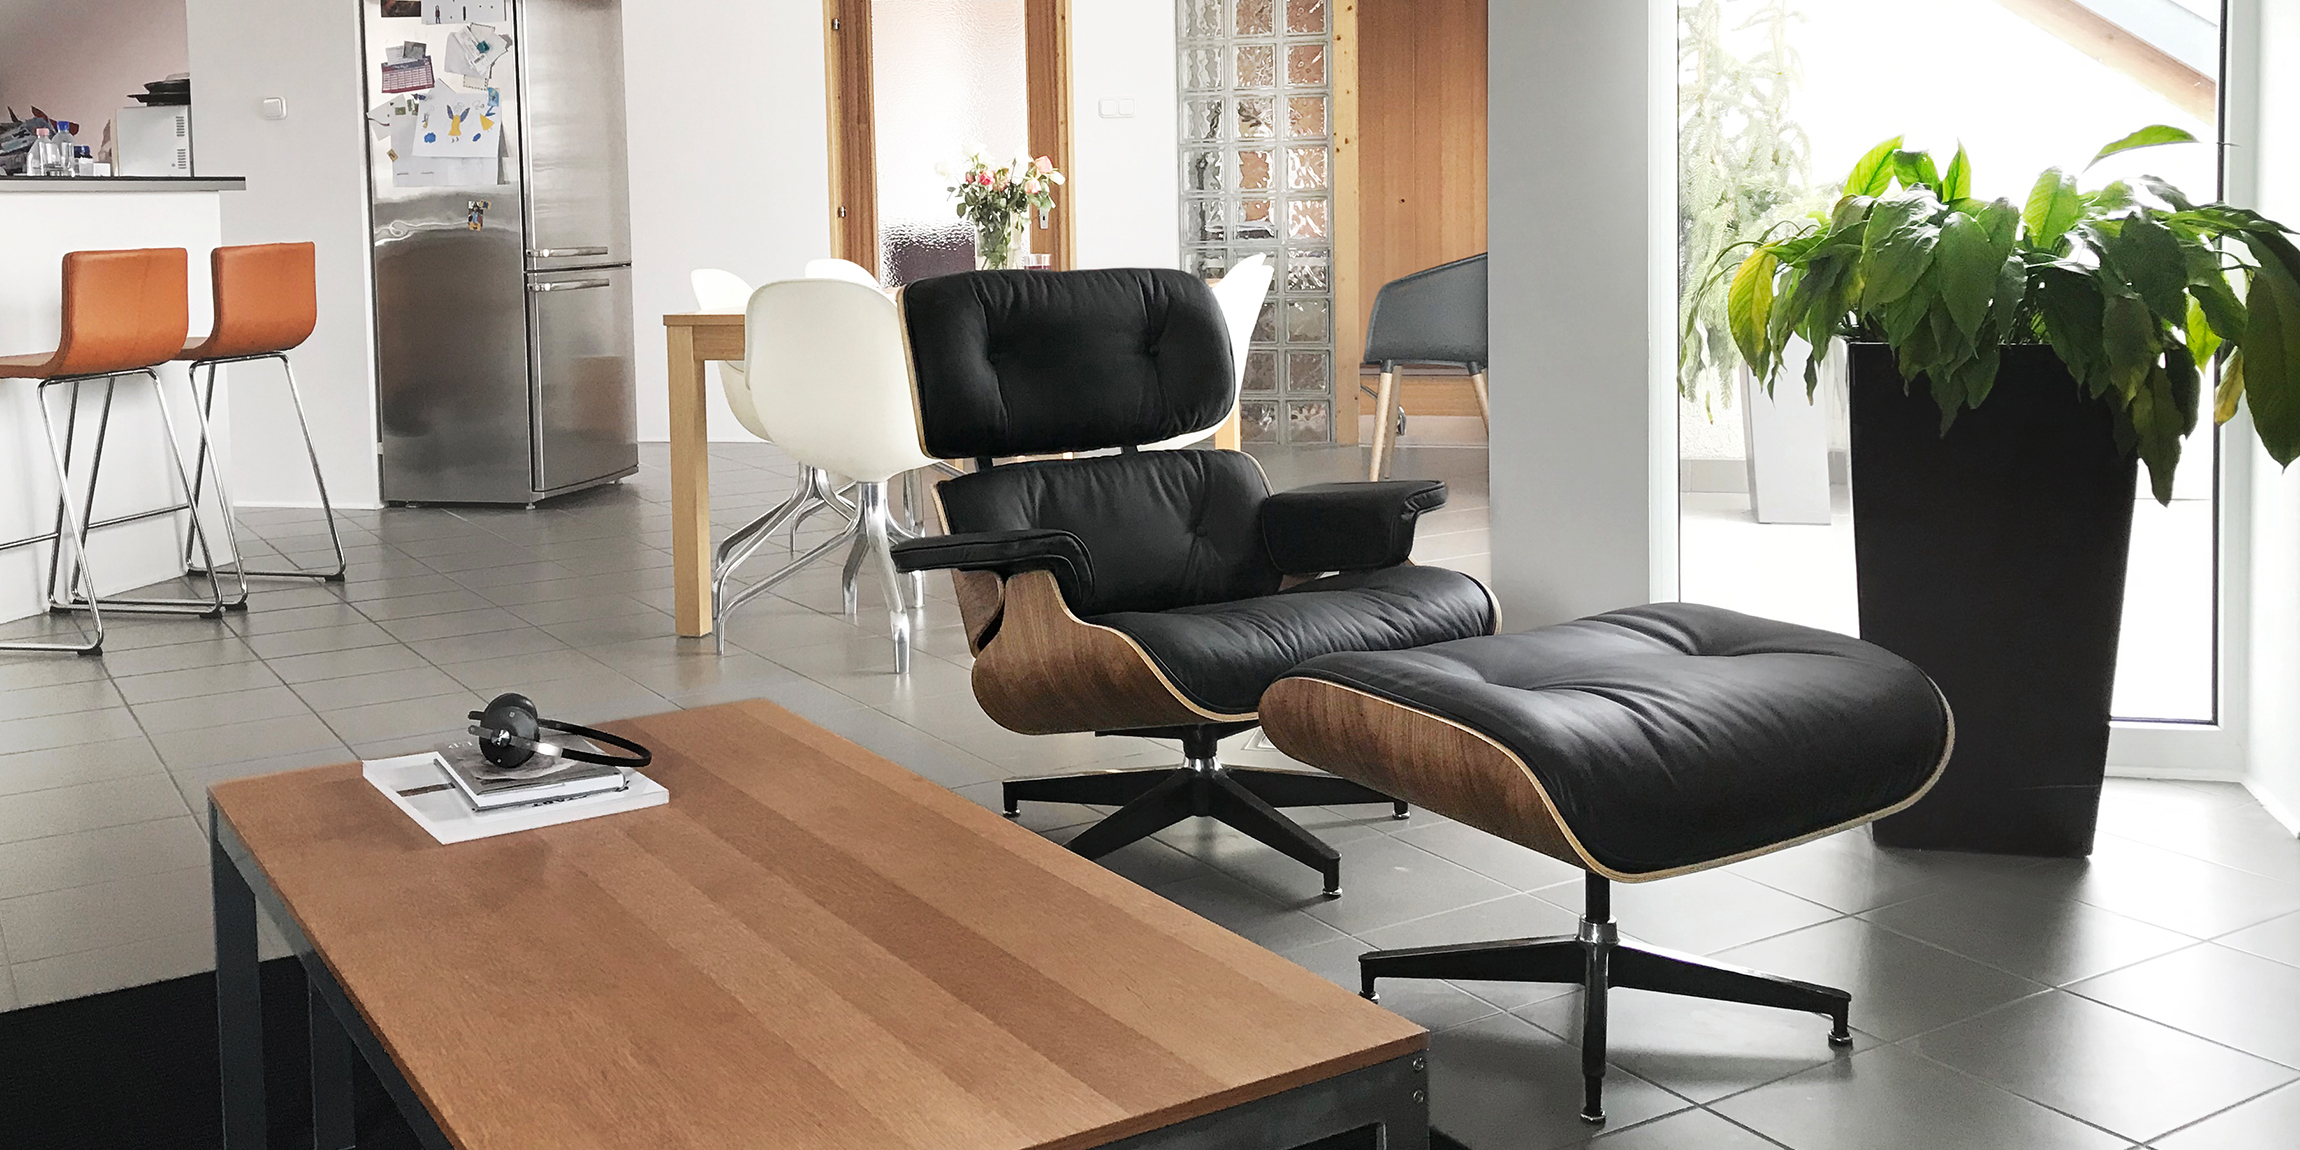 Customer Styling Our Eames Lounge Chair In Their Home